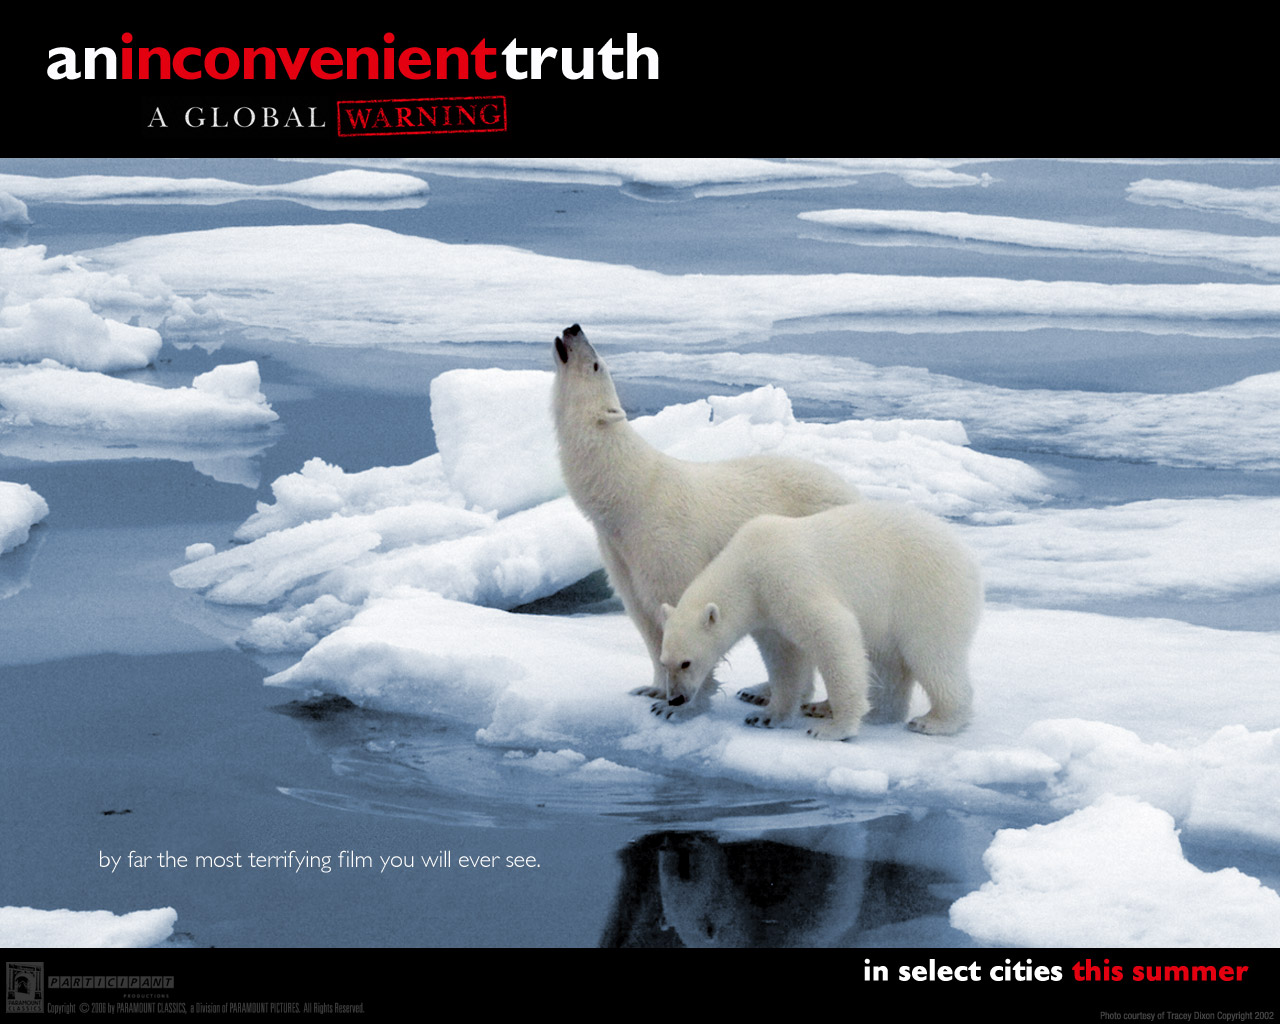 Worksheets An Inconvenient Truth Worksheet what on earth is happening now task 3 an inconvenient truth